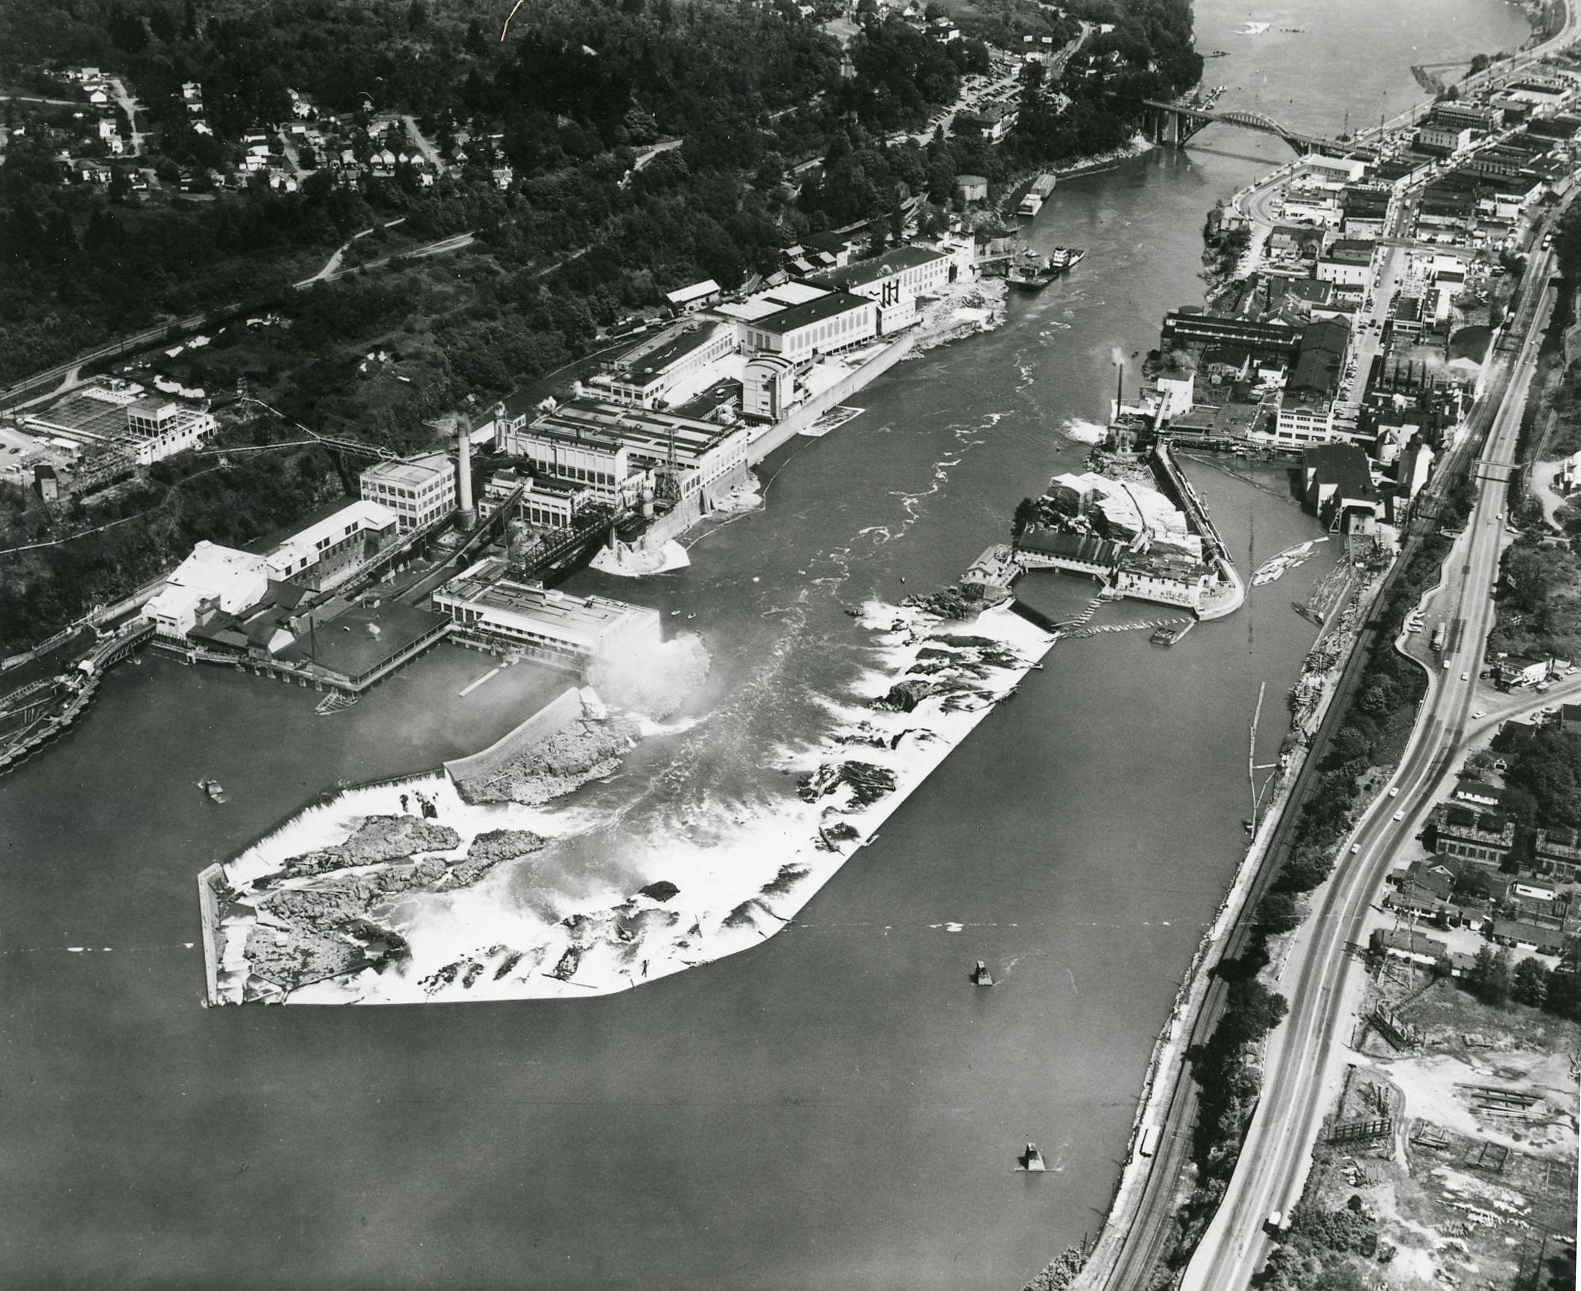 An aerial view of Willamette Falls, with West Linn on the left and Oregon City on the right. The mill belonged to Crown Zellerbach.